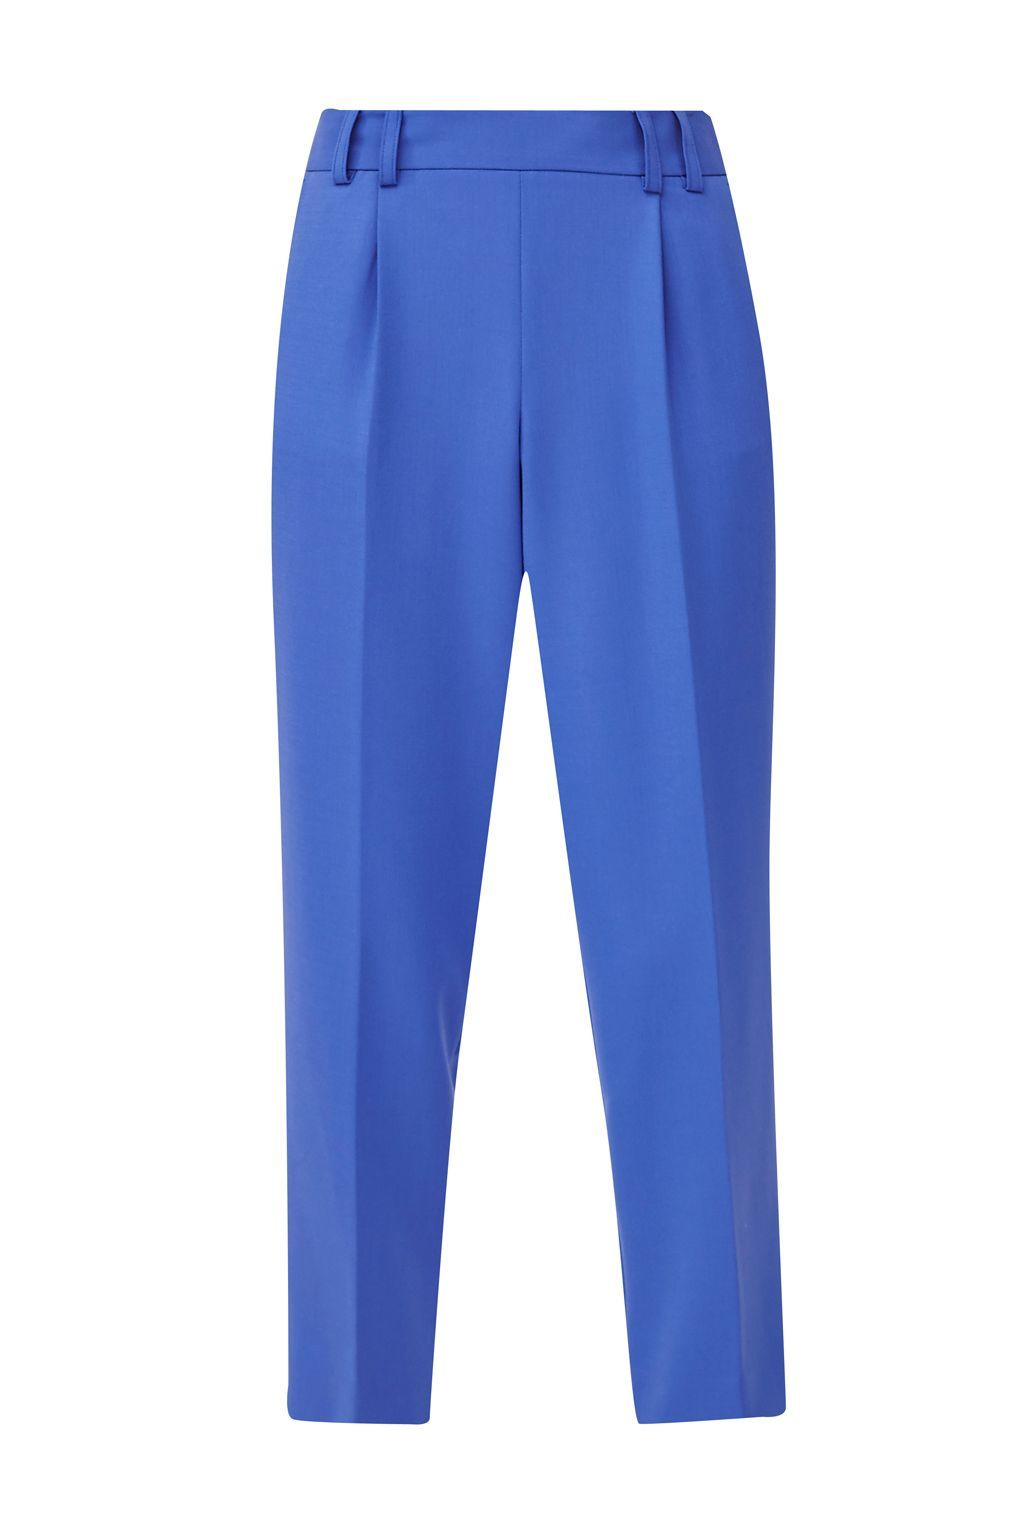 Whisper Light Cropped Peg Trousers, Blue - pattern: plain; style: peg leg; waist: high rise; predominant colour: diva blue; length: ankle length; fibres: polyester/polyamide - mix; occasions: occasion, creative work; fit: tapered; pattern type: fabric; texture group: other - light to midweight; season: a/w 2015; wardrobe: highlight